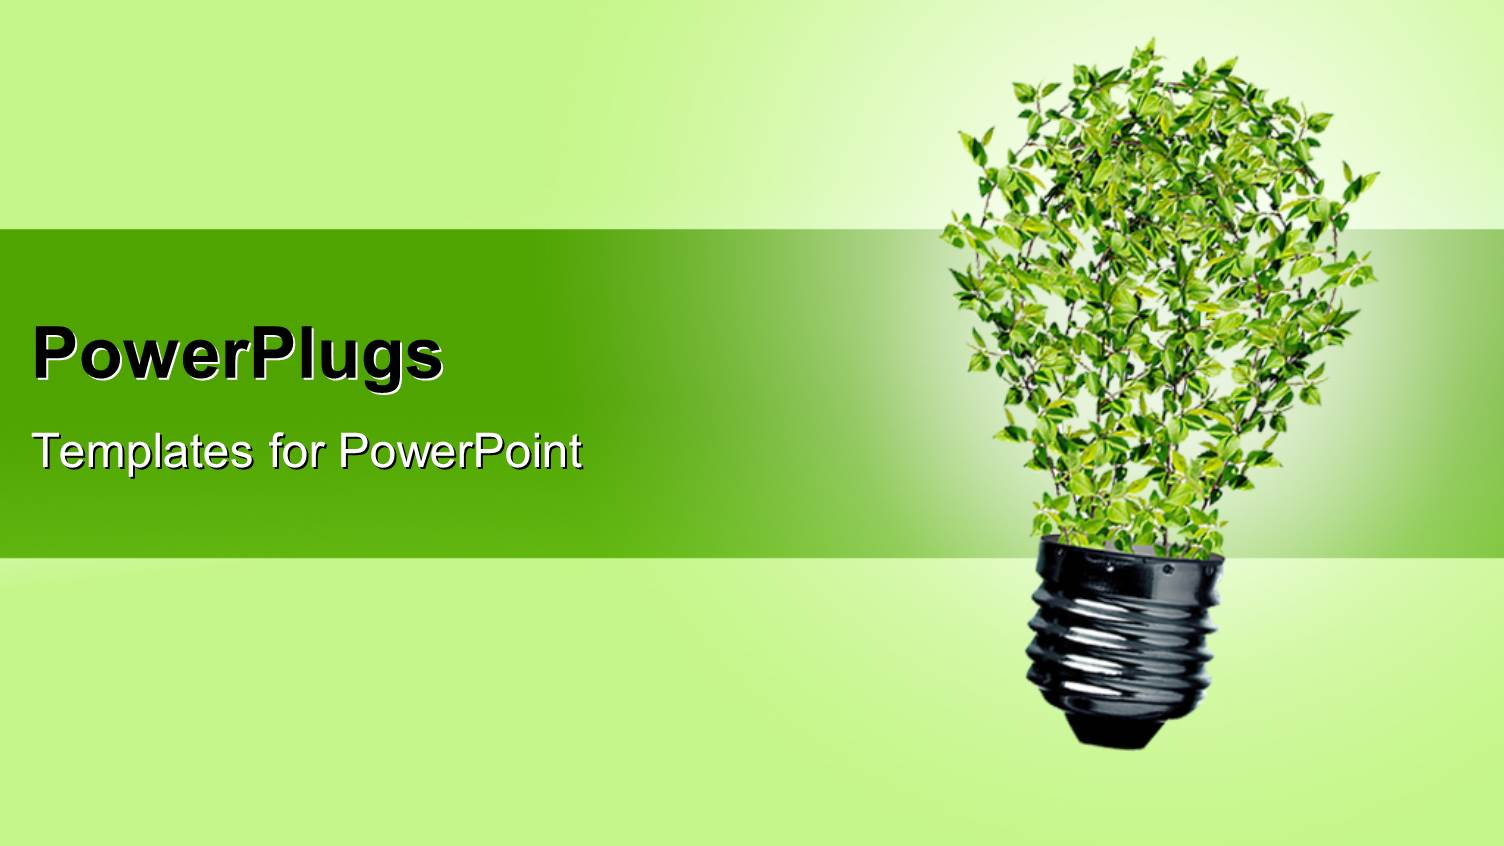 Powerpoint template white animated human figure with a lit light beautiful ppt theme with green bulb with leaves as a symbol of energy and nature depicting toneelgroepblik Gallery